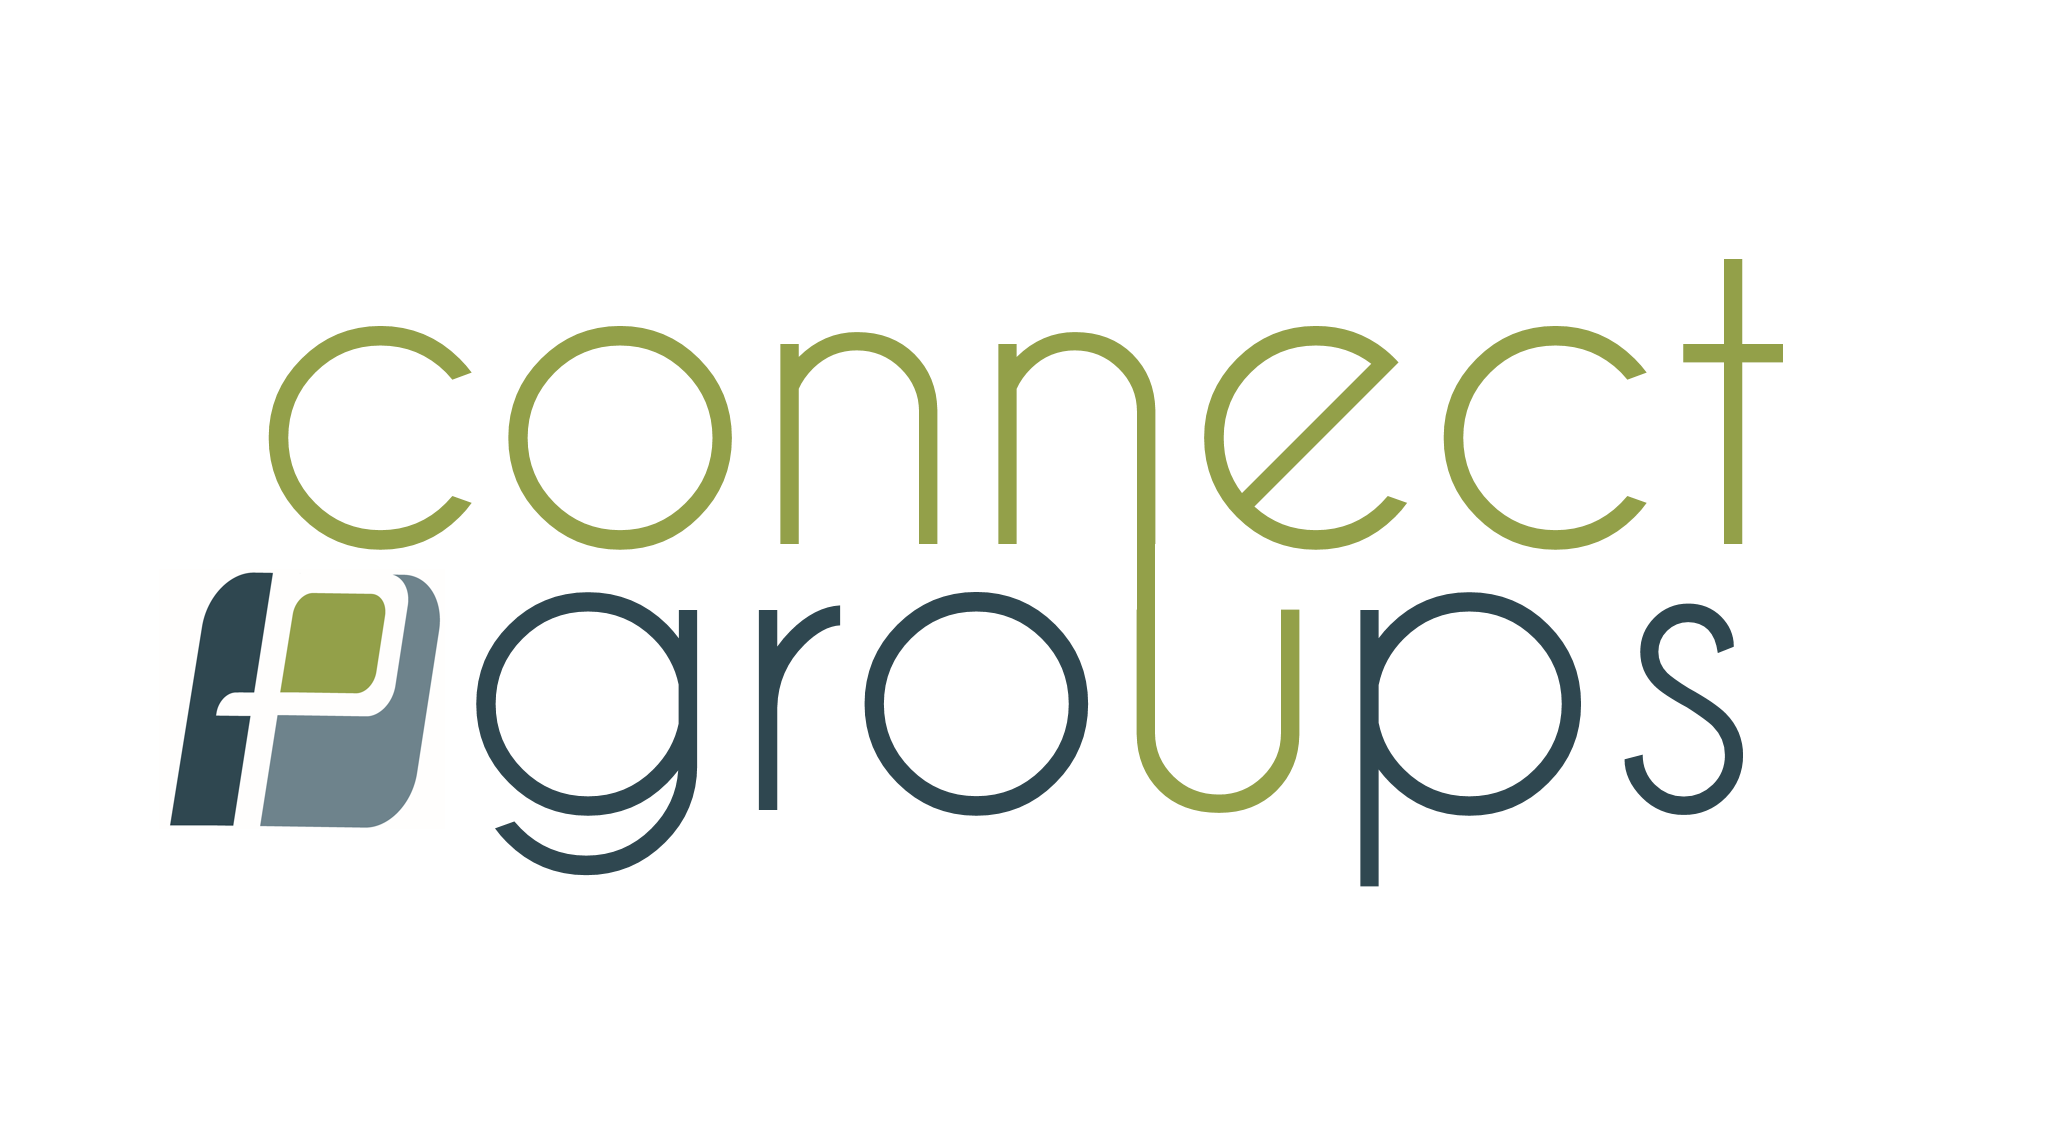 Connect groups picture. Progressive dinner png clip art black and white